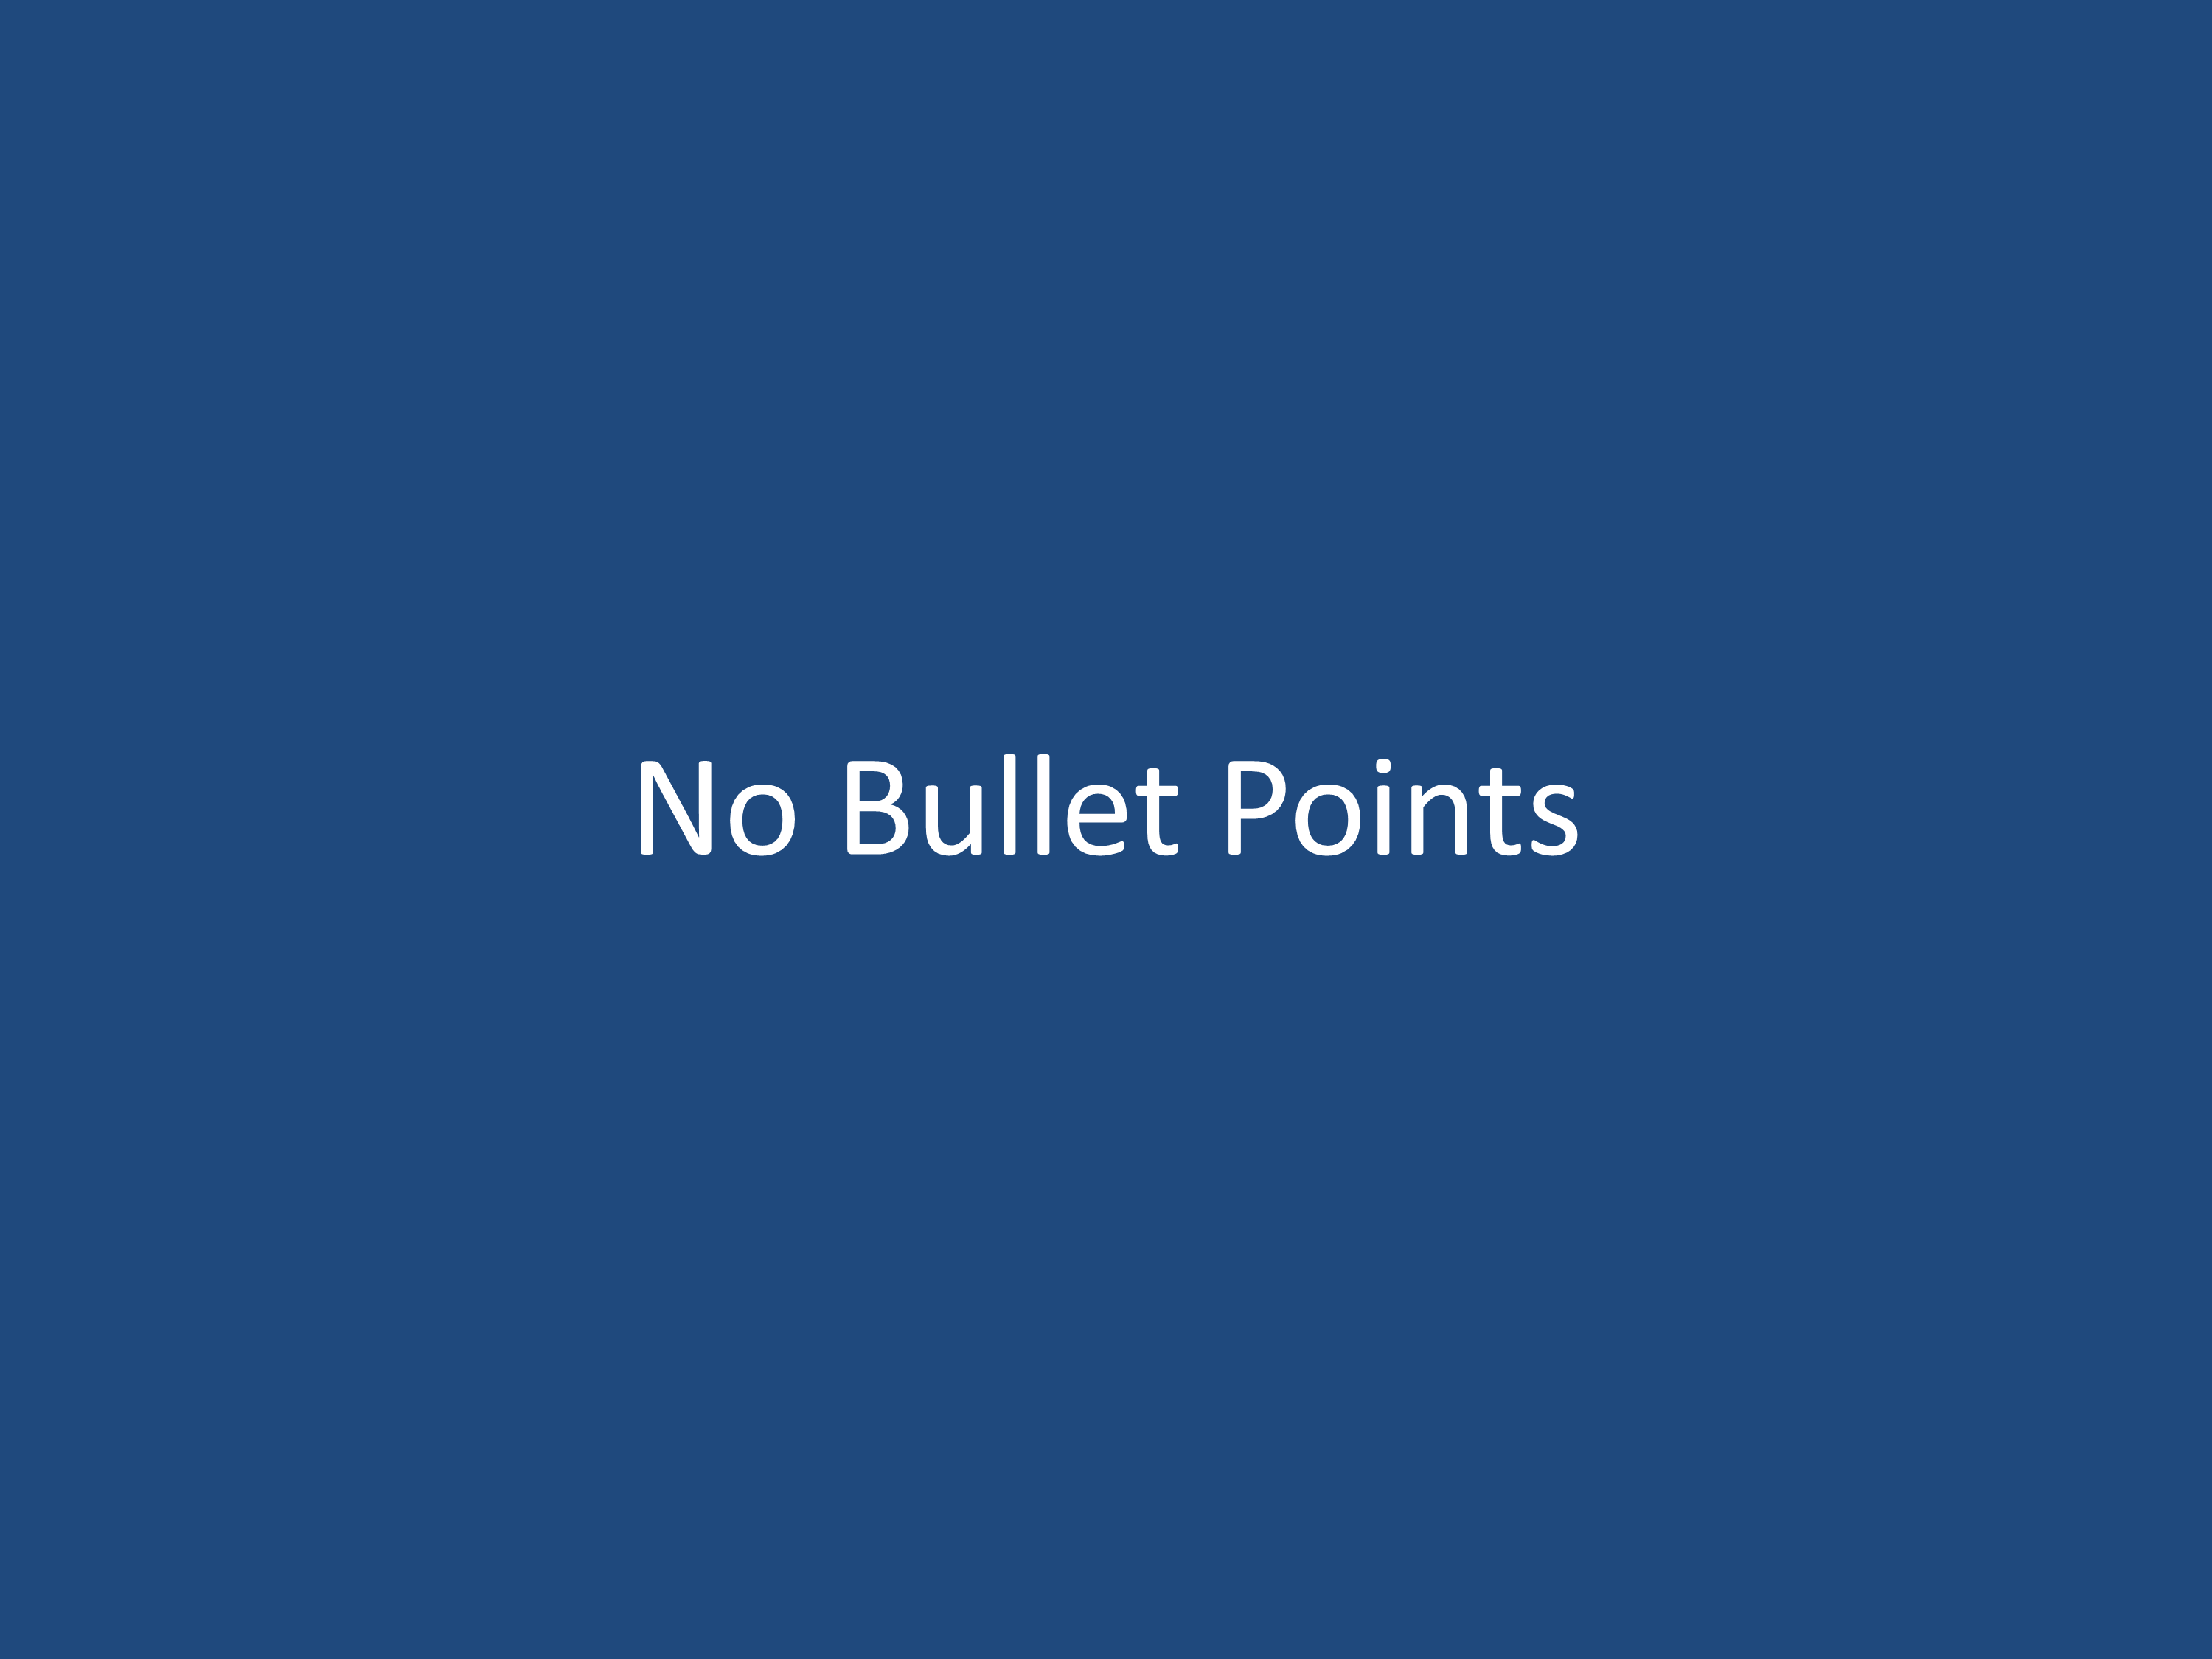 No Bullet Points Template.pptx